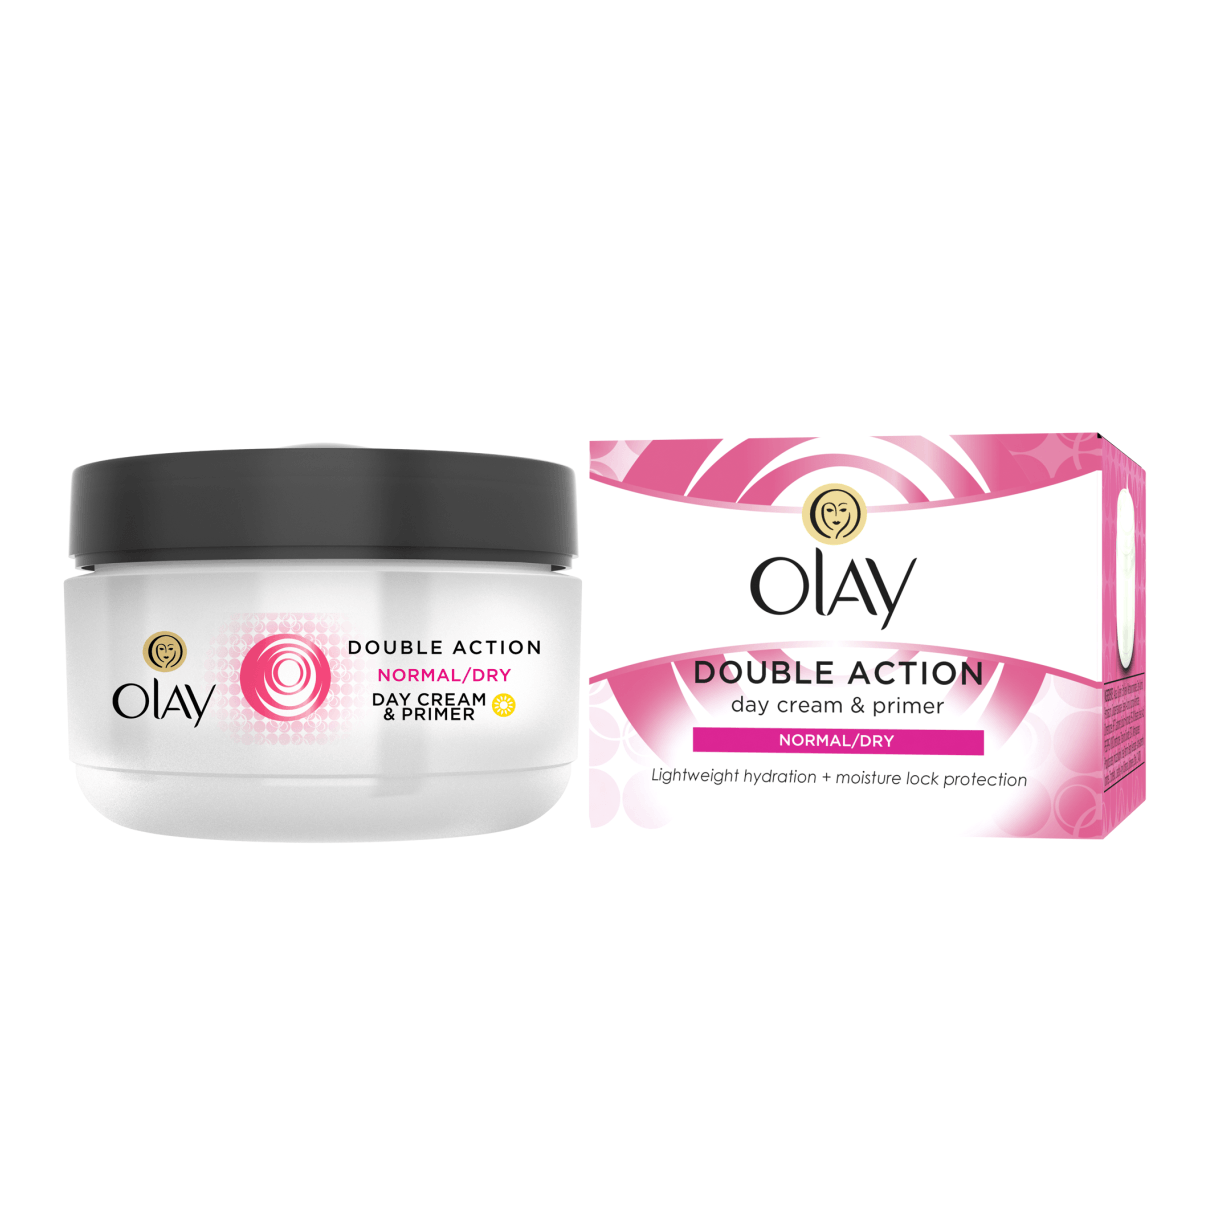 Olay Essentials Double Action Day Cream 50ml Norm/Dry